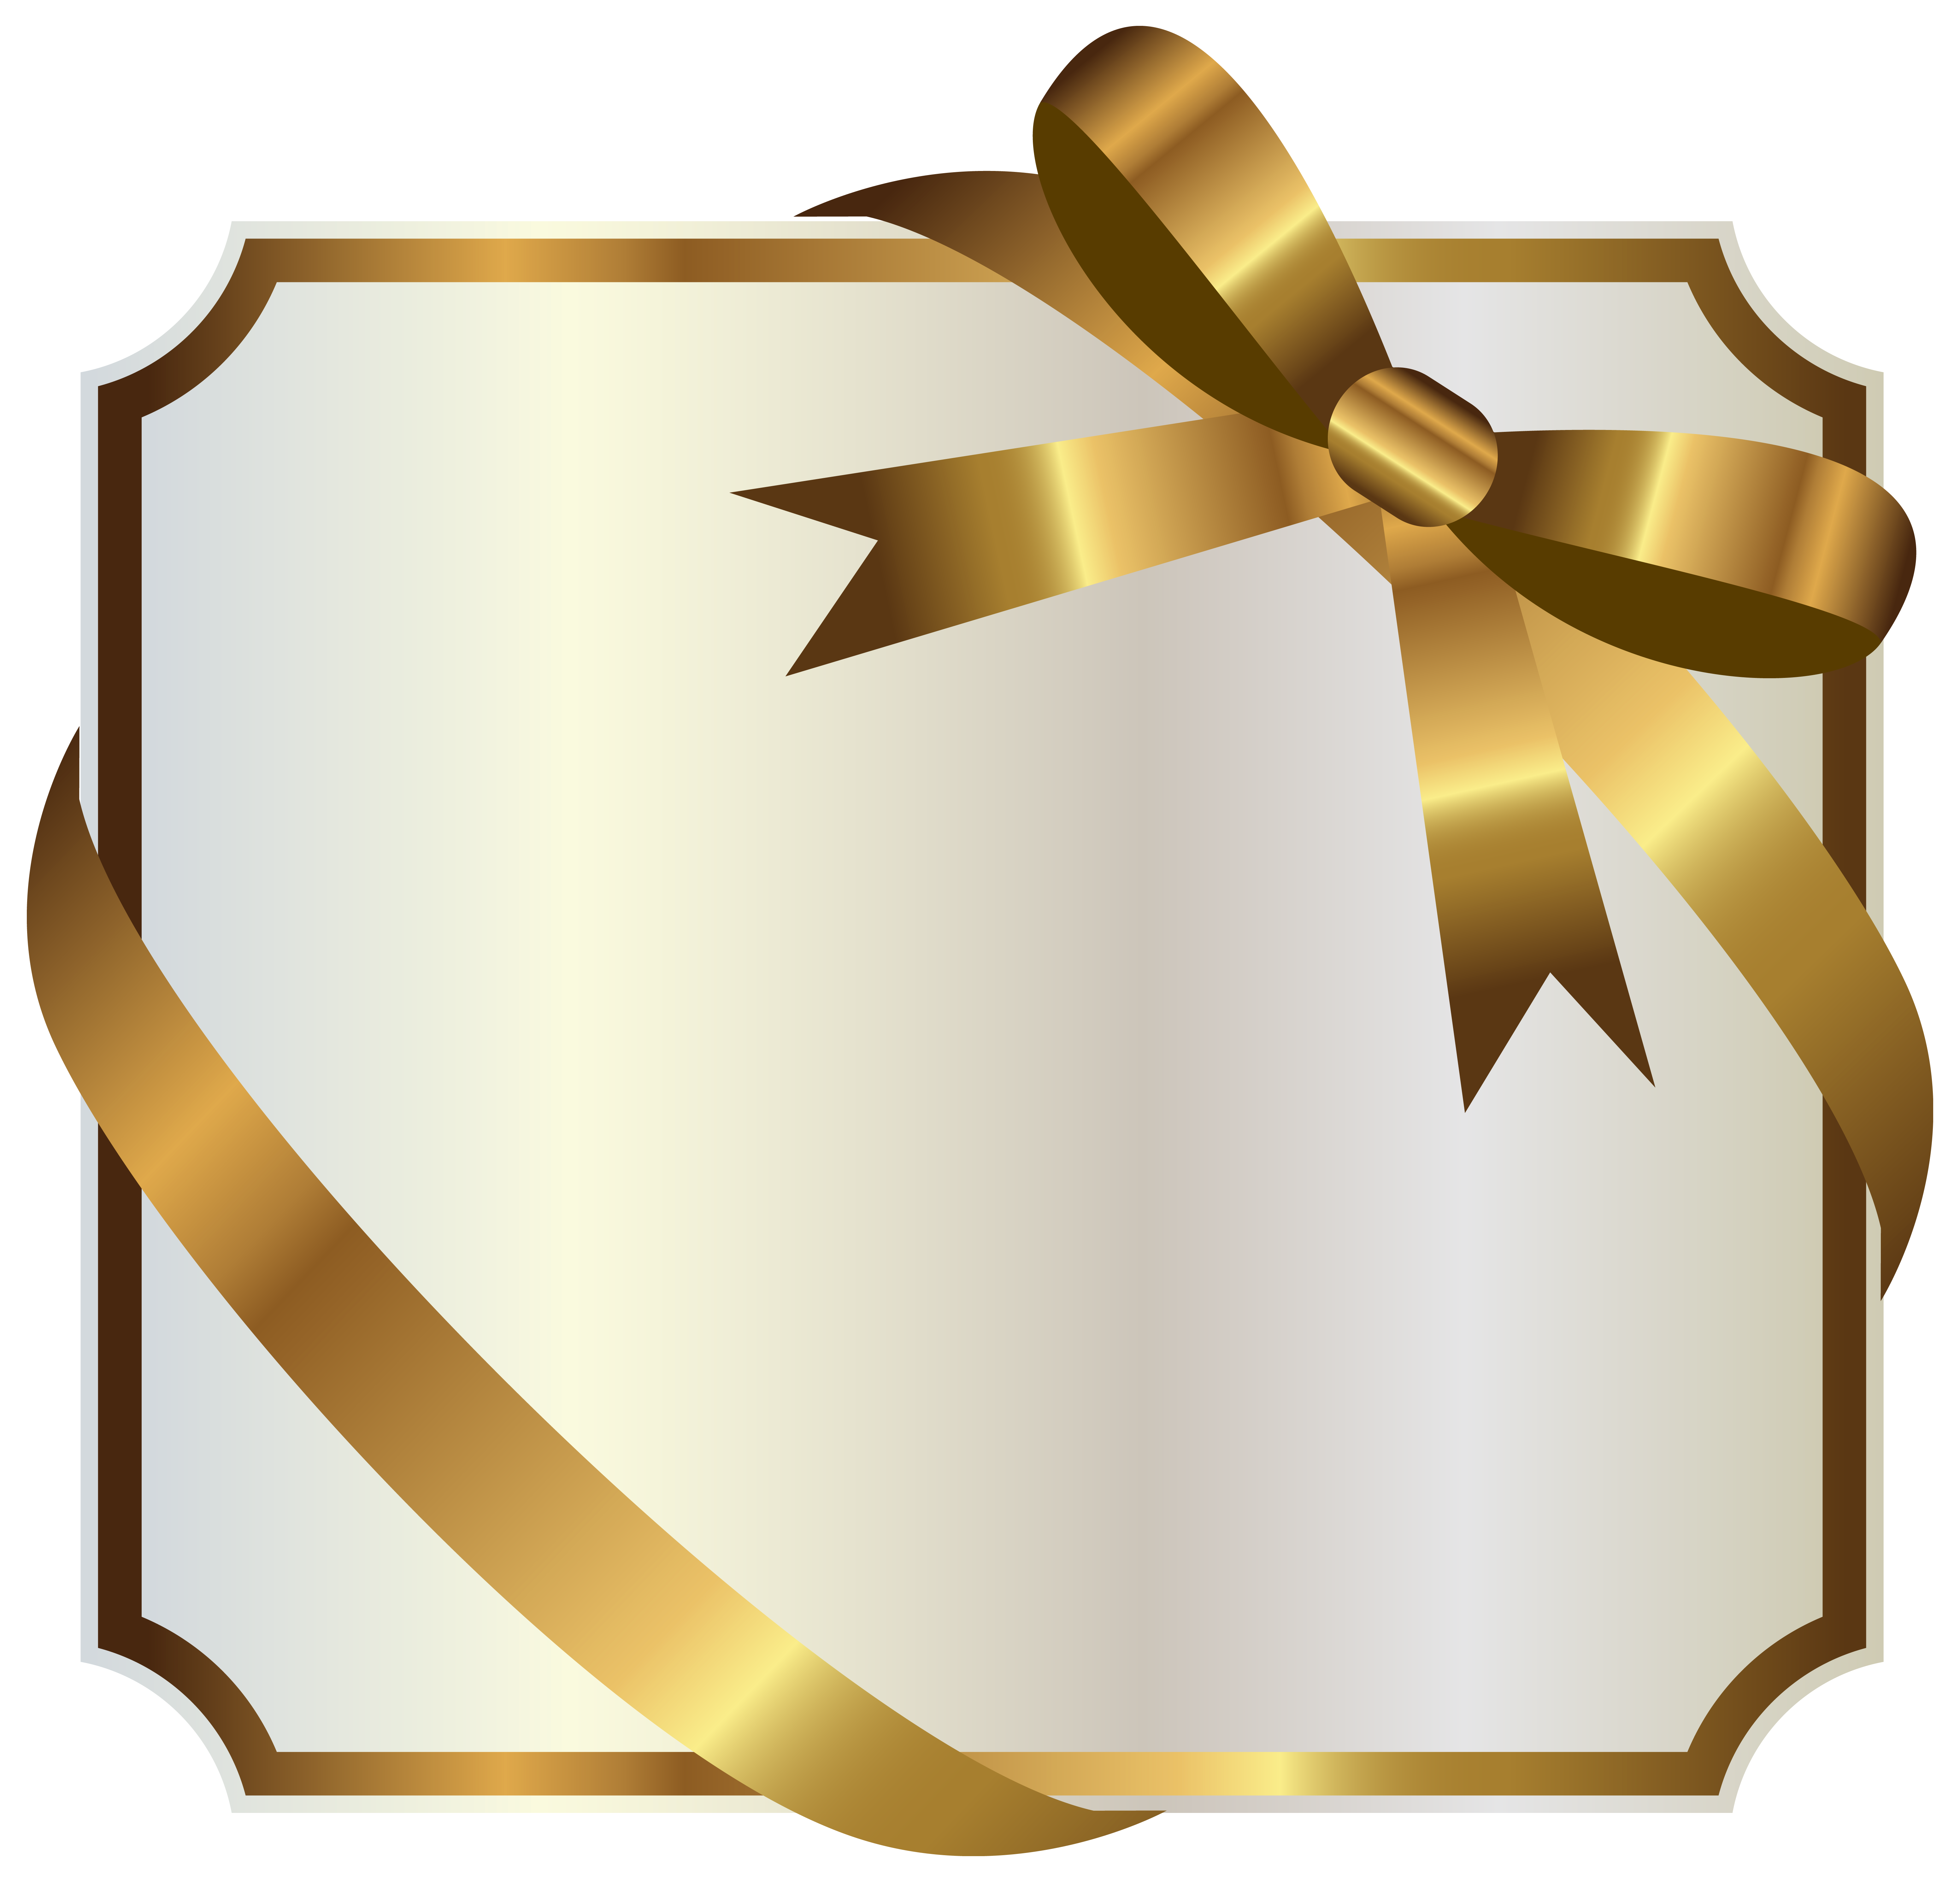 Clipart bow gold. White label with png